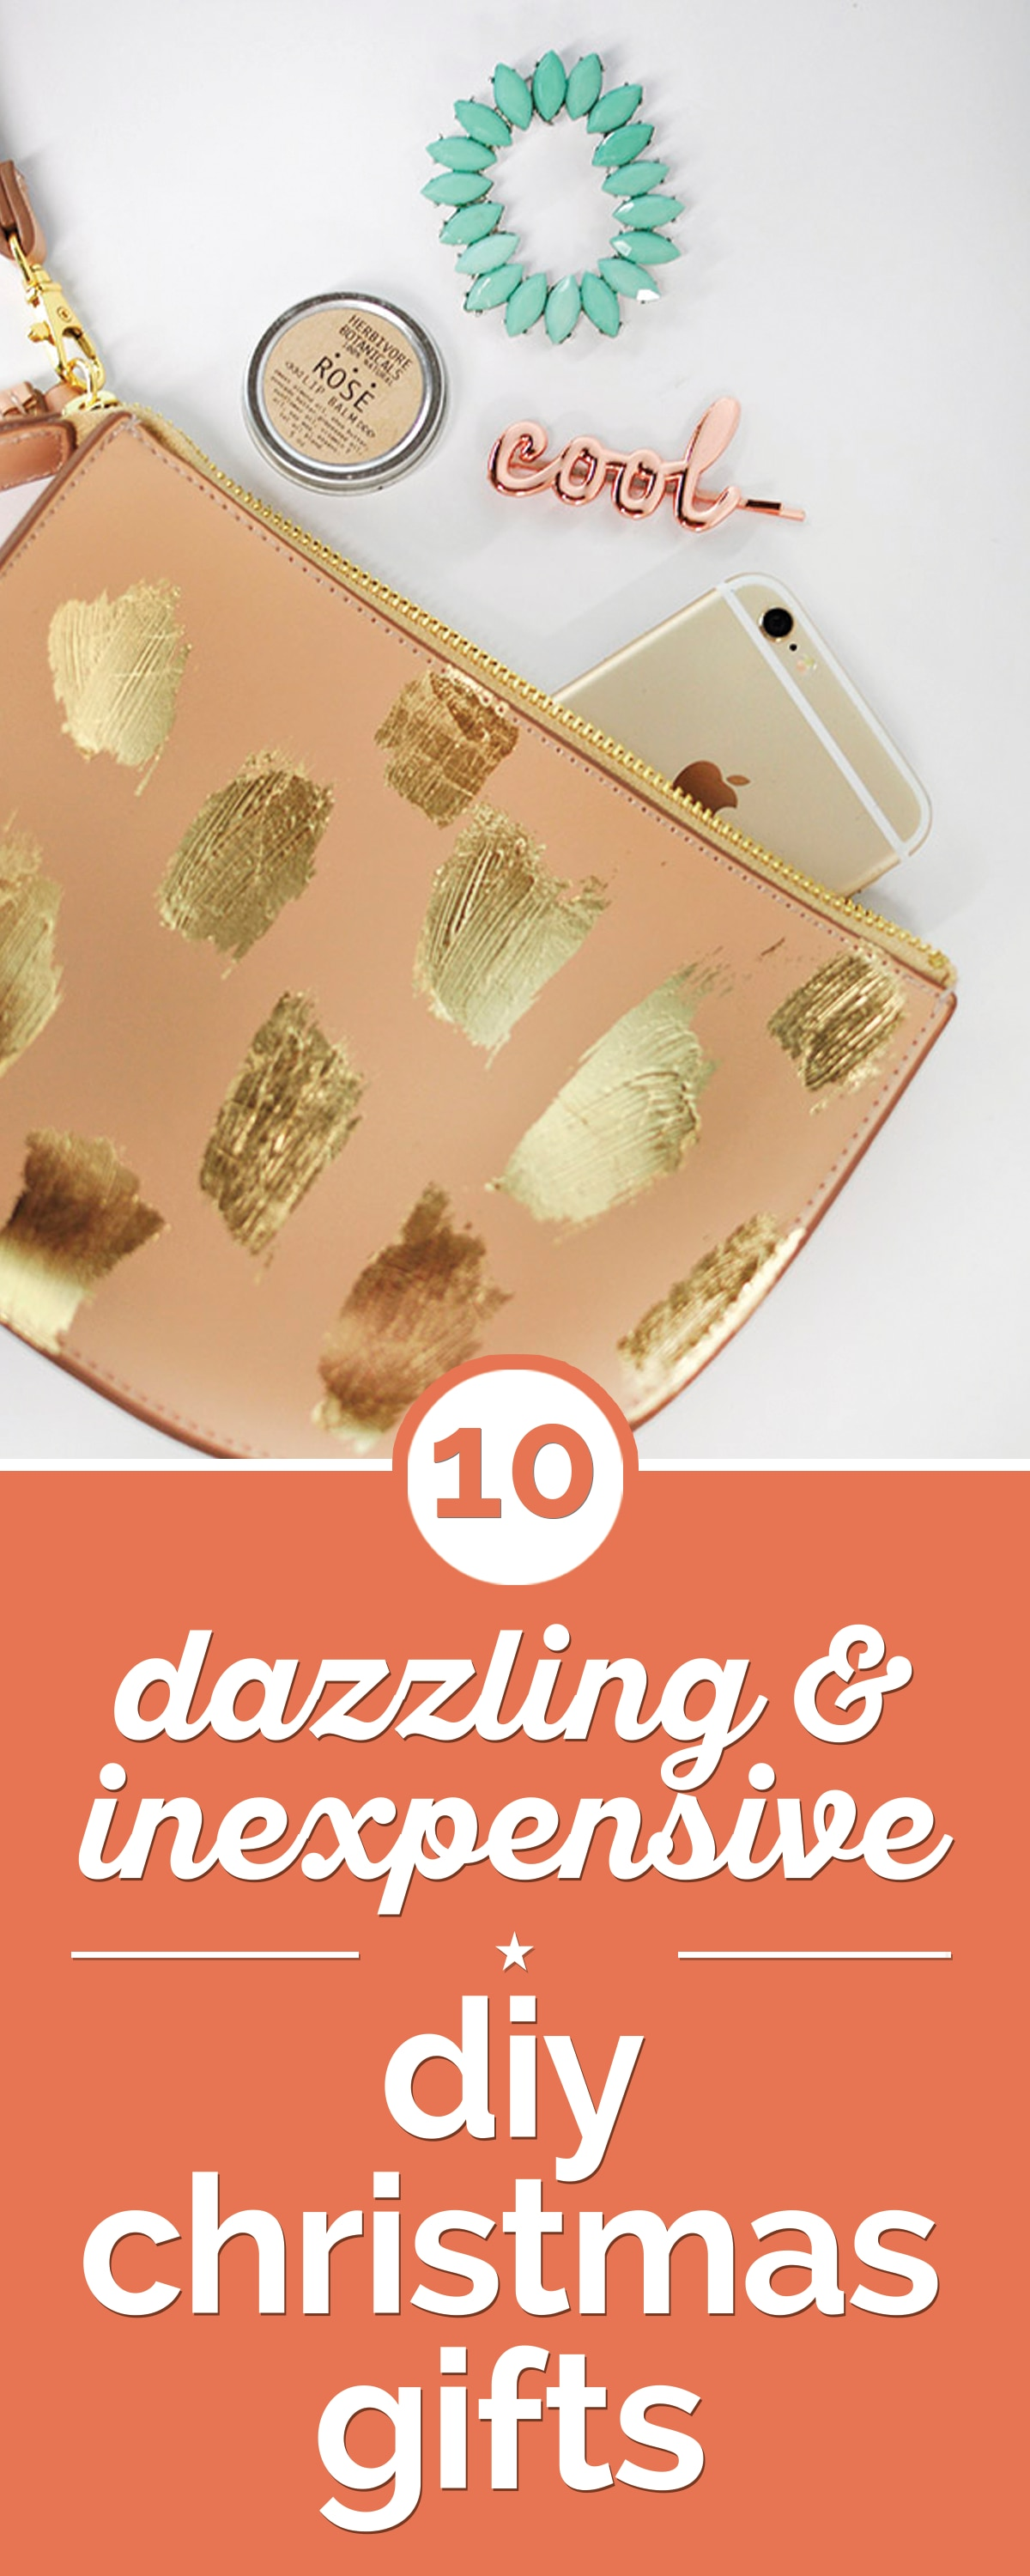 10 Dazzling & Inexpensive DIY Christmas Gifts | thegoodstuff